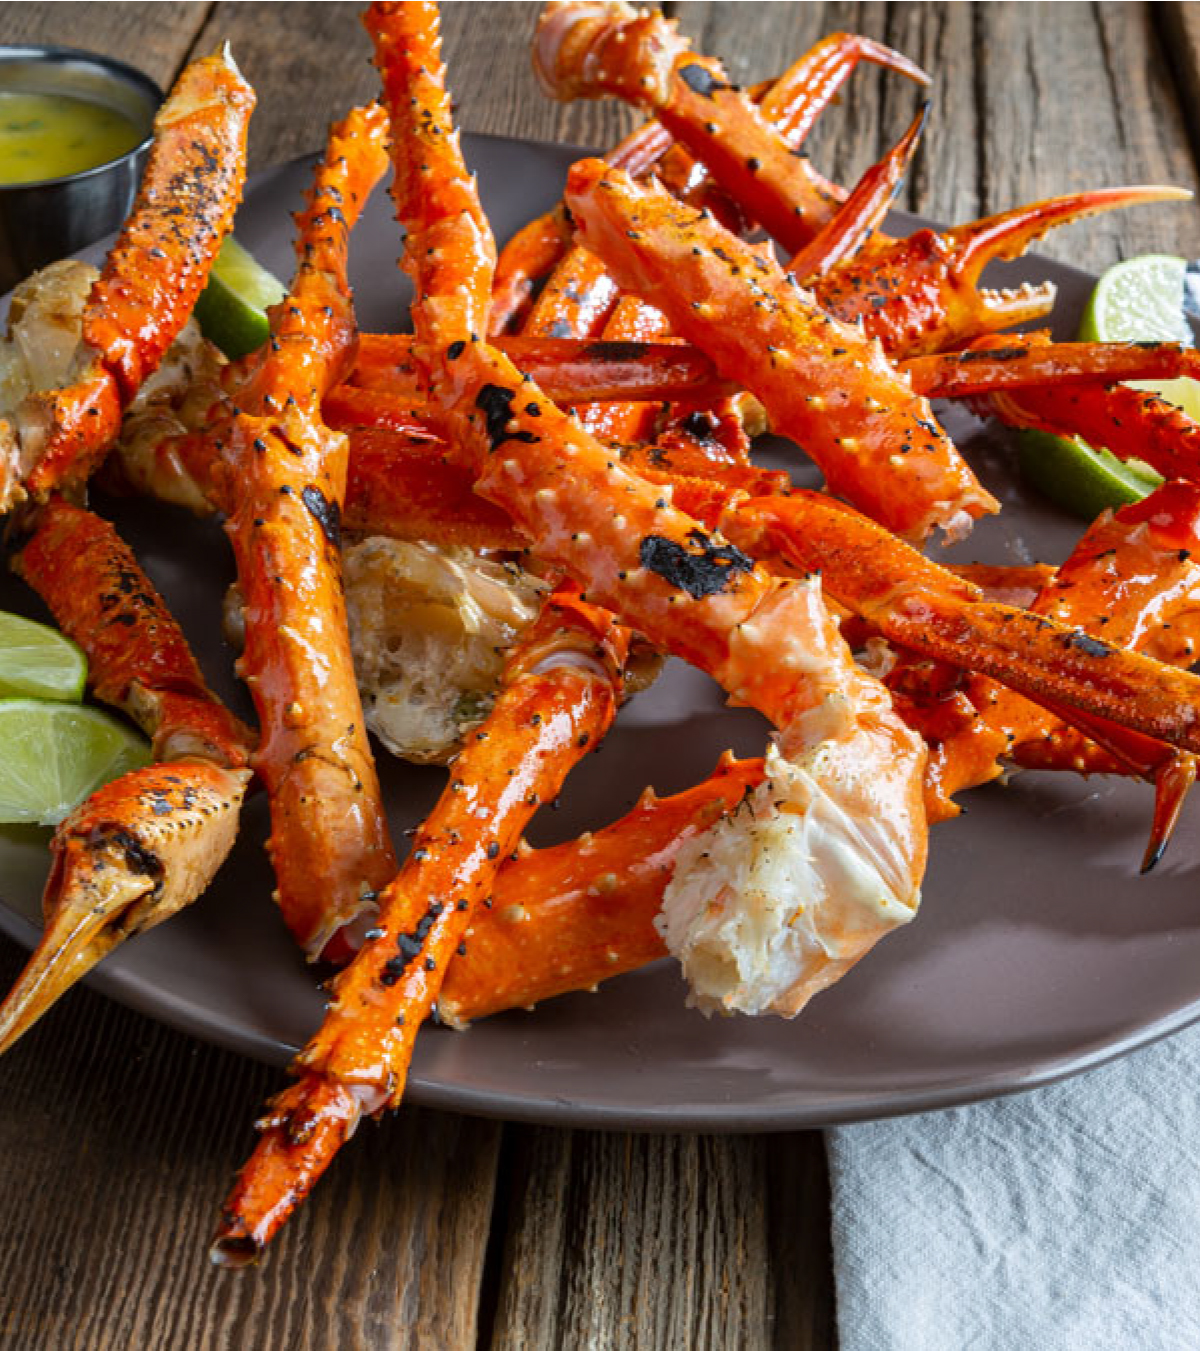 Grilled Crab Legs with Spicy Mustard Sauce & Basil-Lime Butter